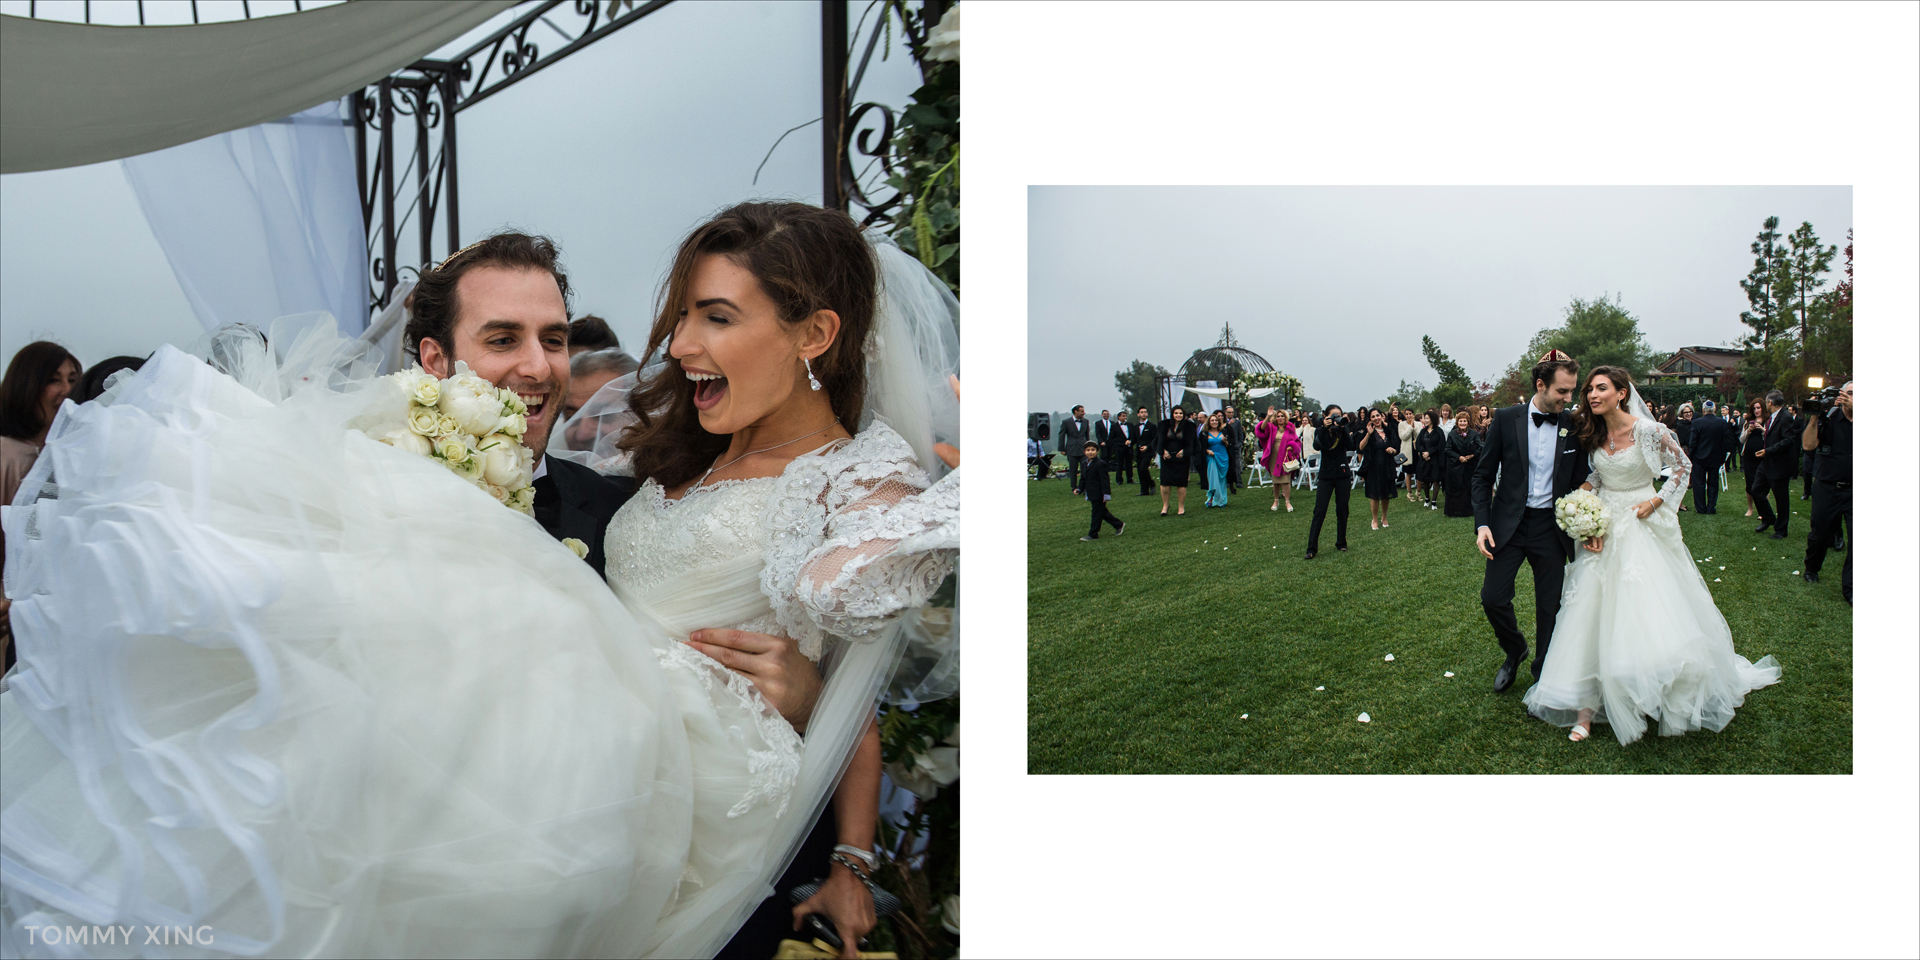 Los Angeles Jewishg Wedding at Riviera Country Club in Pacific Palisades 洛杉矶婚礼婚纱摄影师  Tommy Xing Photography 28.jpg